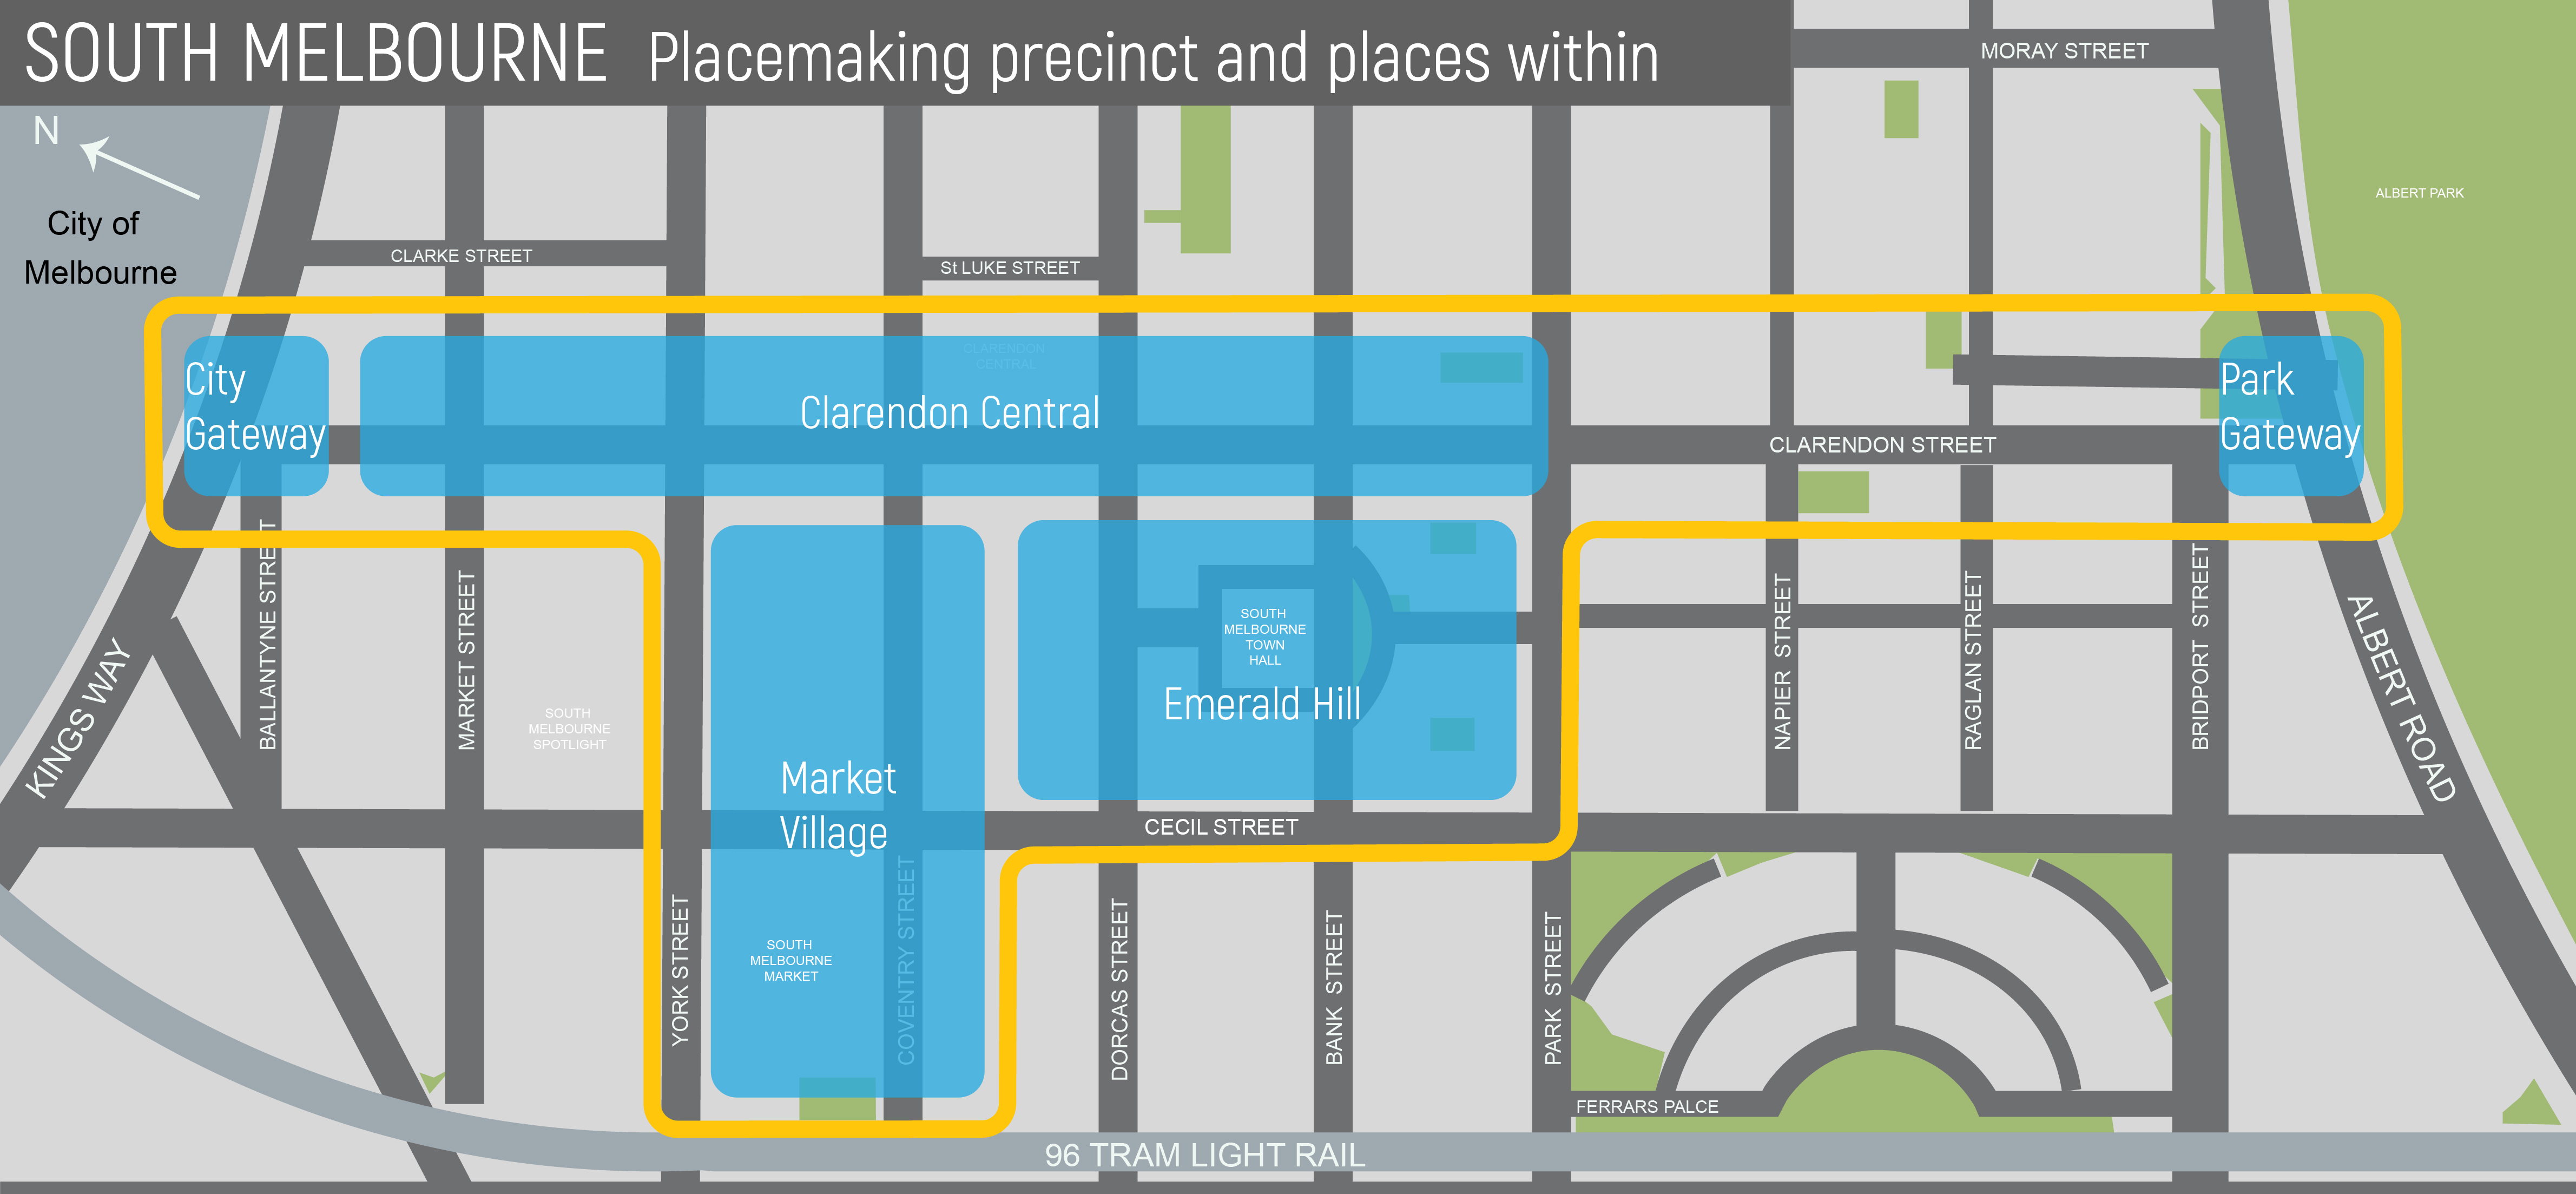 South Melbourne Placemaking Precinct Map